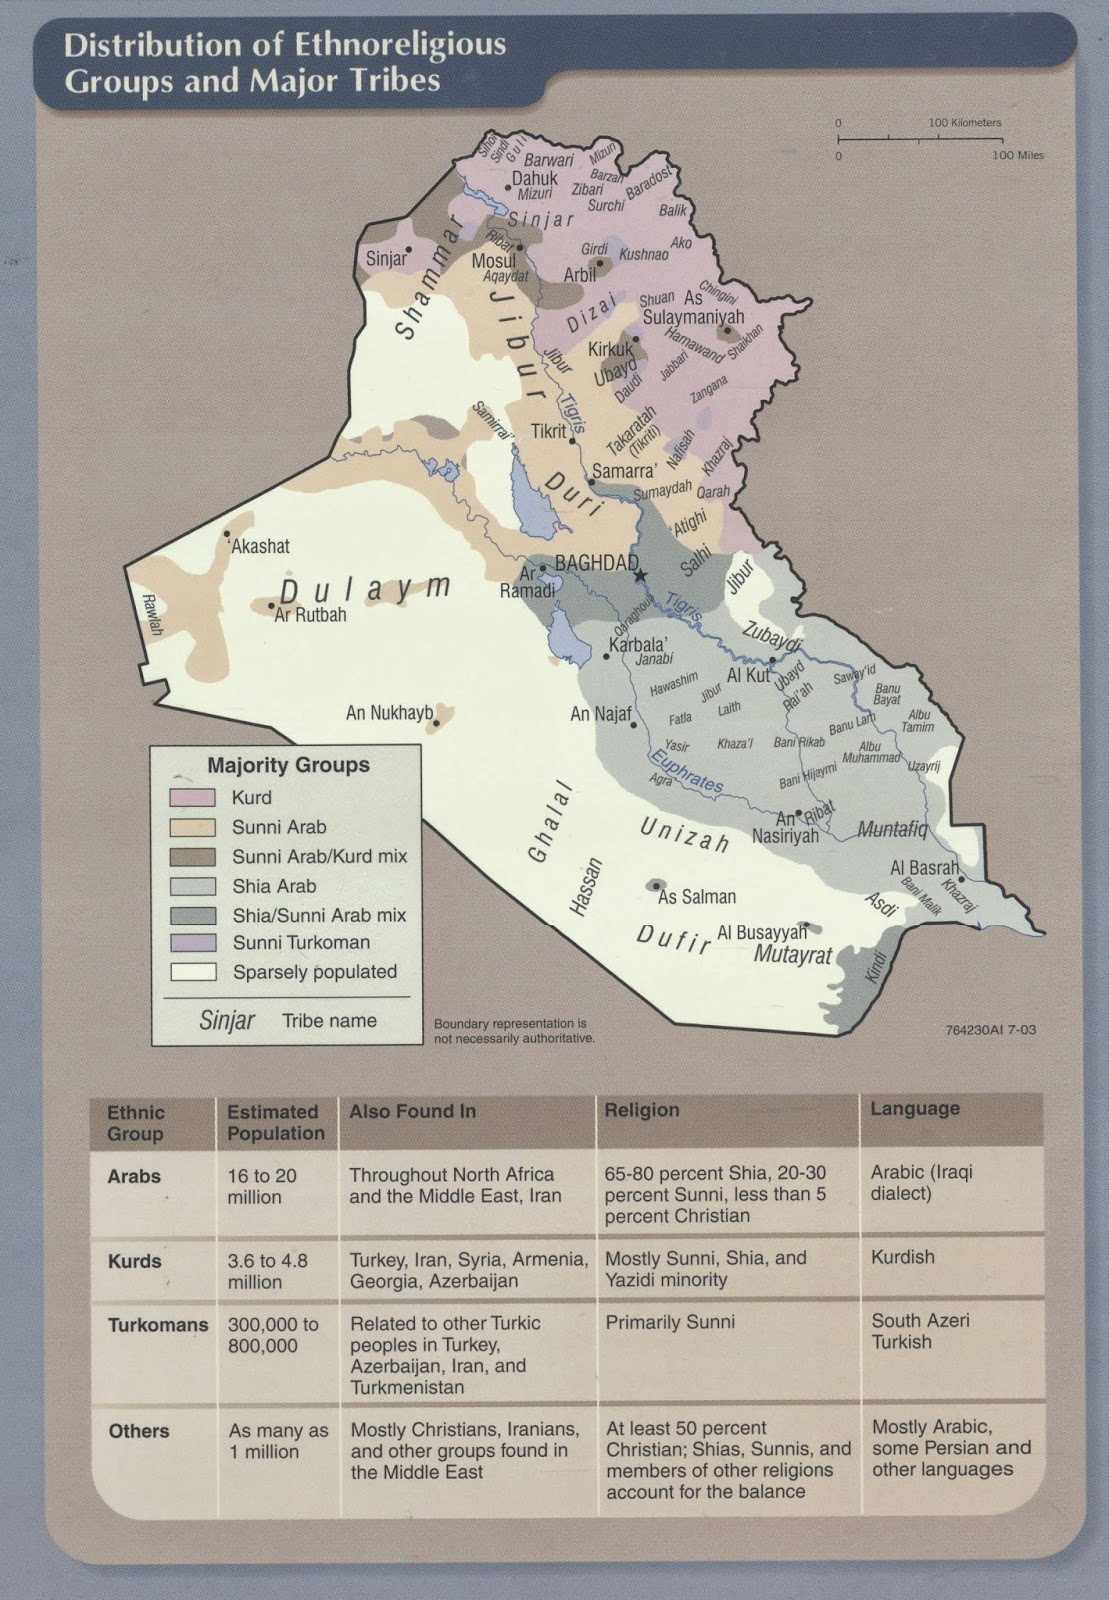 maps of iraq from ball state university libraries